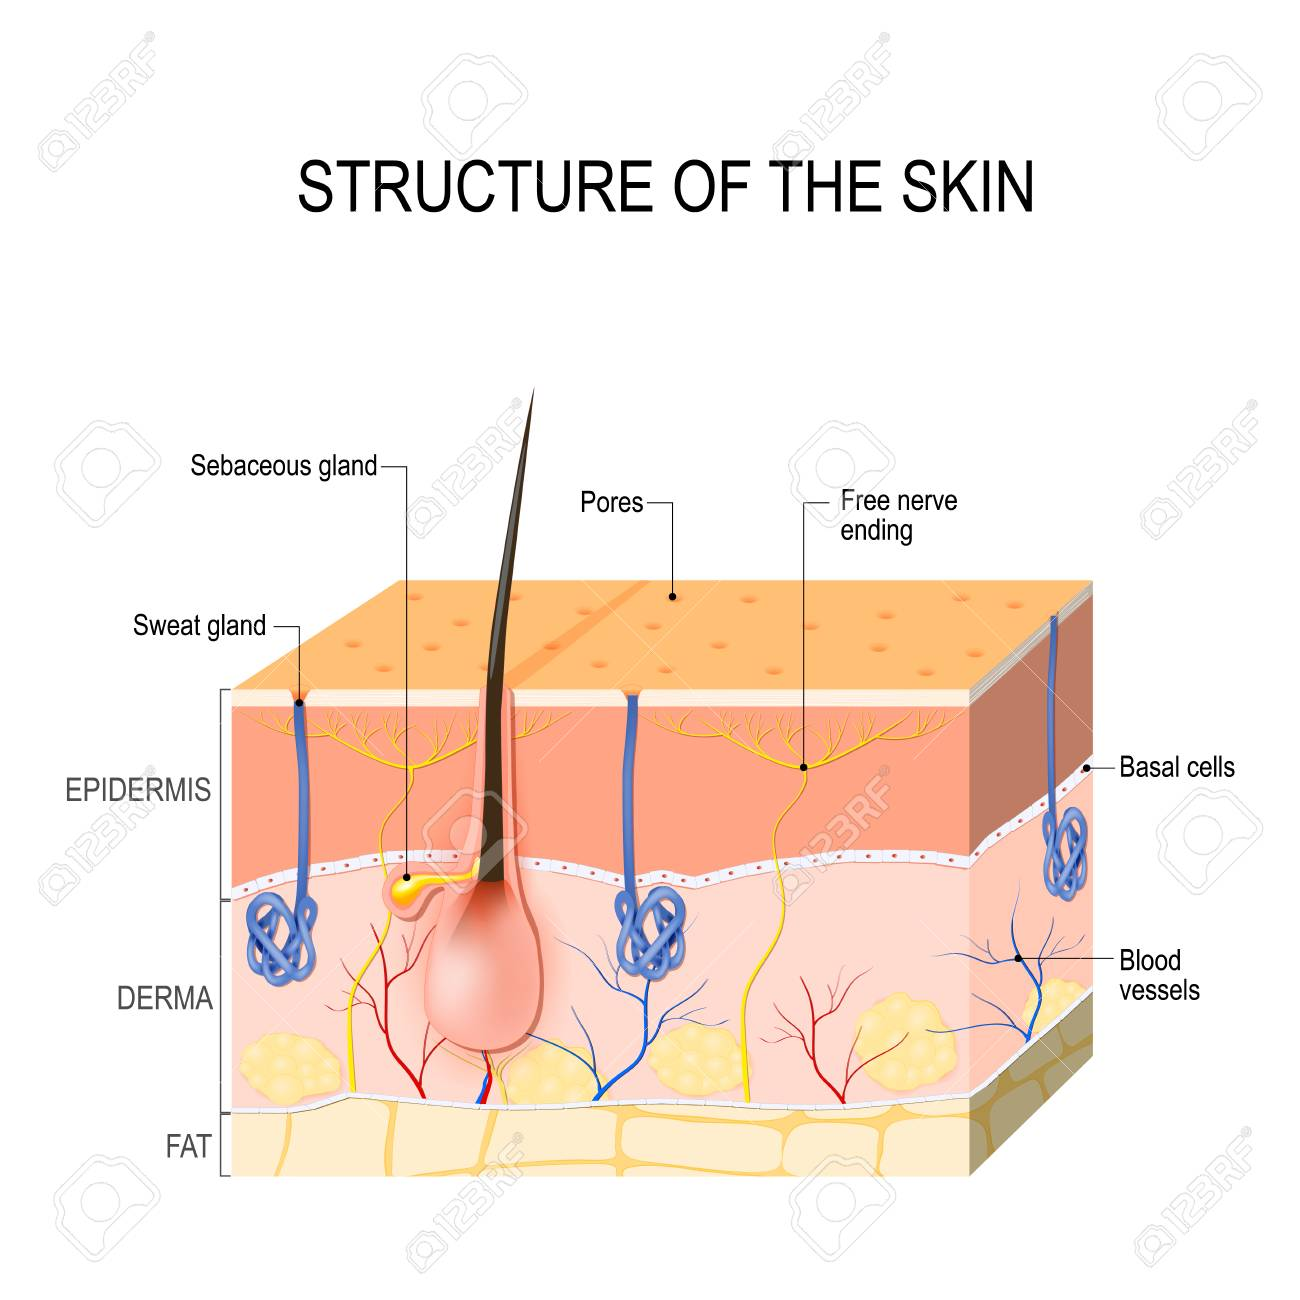 Structure Of The Skin Skin Layers With Blood Vessel Free Nerve